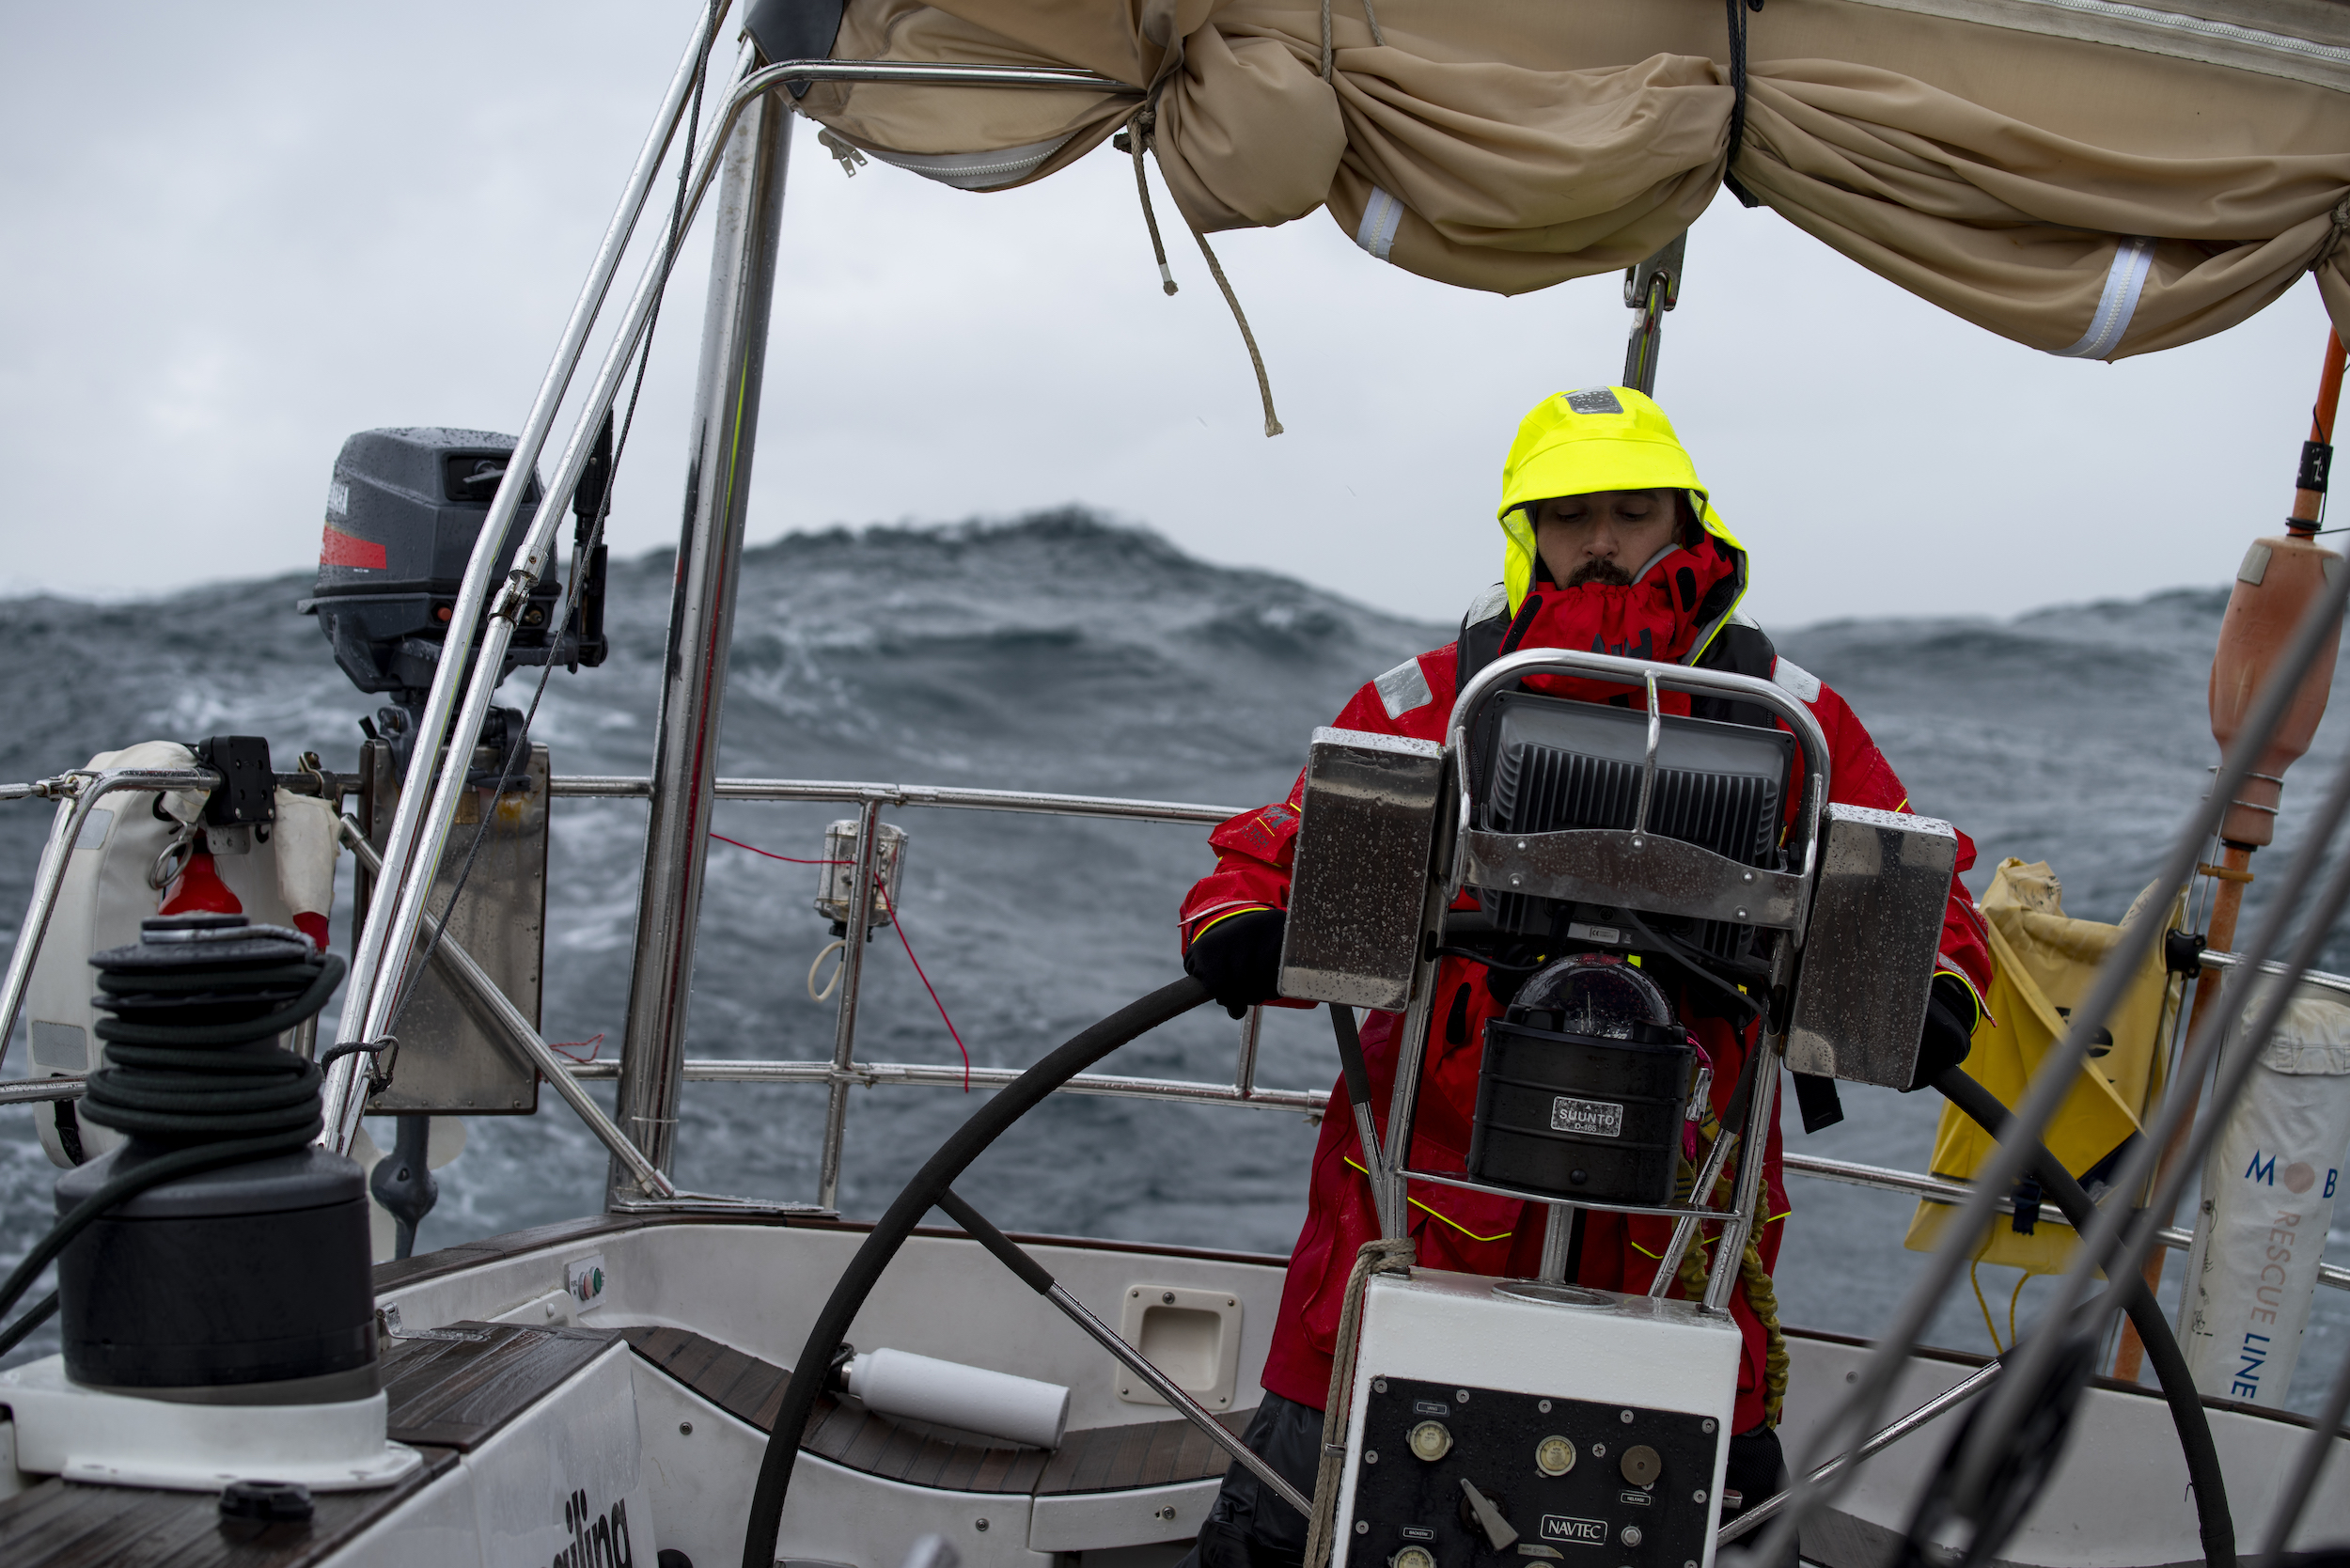 Mark at the helm at the height of the southwesterly, winds 35-40, heavy rain and 8-10' seas.